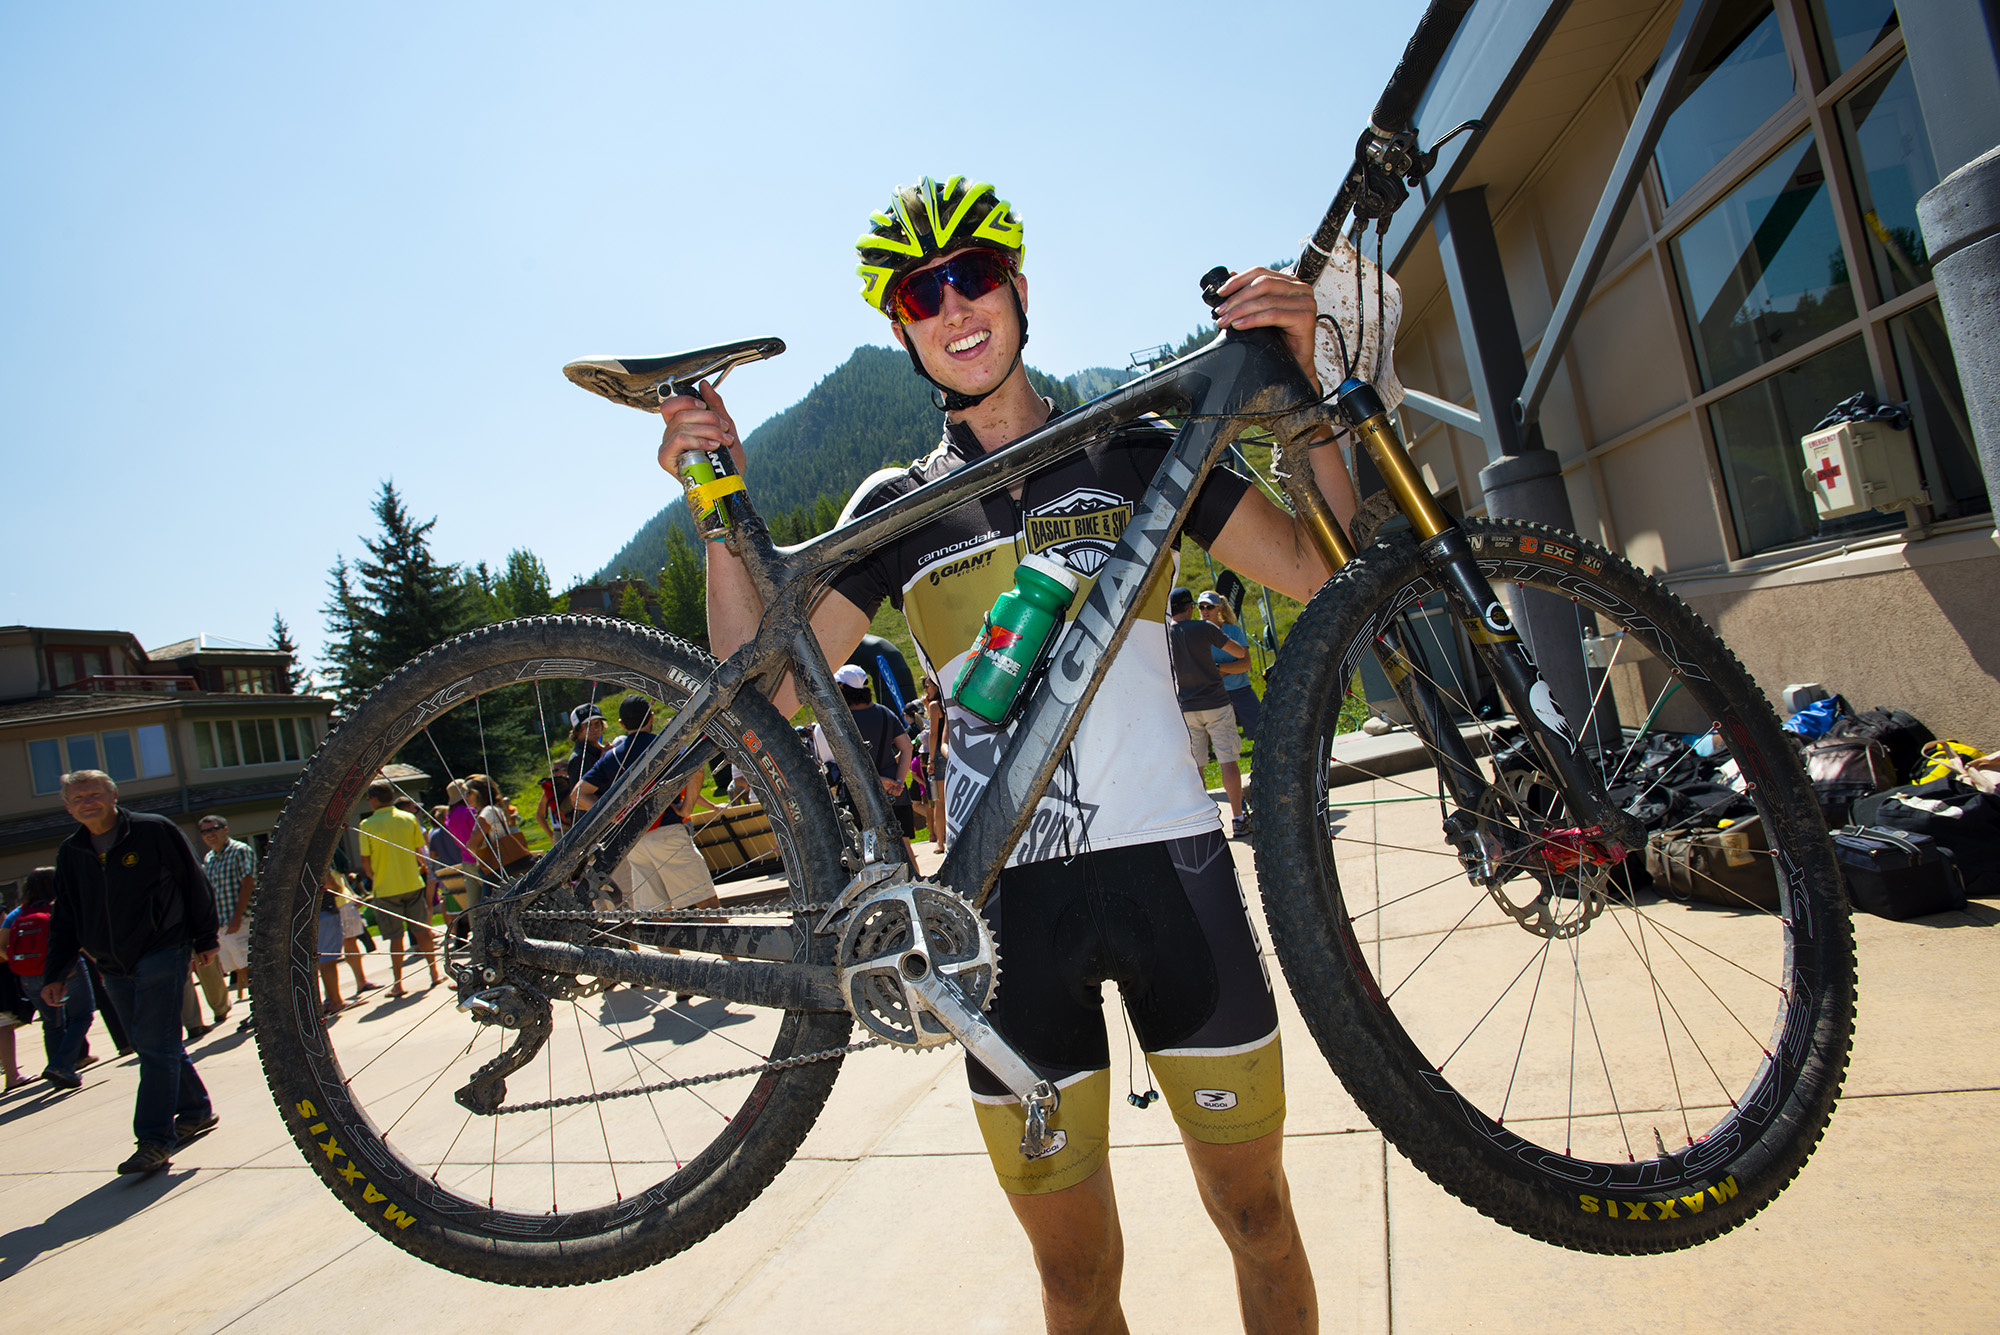 Keegan Swirbul celebrates 1st place in the 2nd Annual Power of Four mountain bike race. Photo by Daniel Bayer.